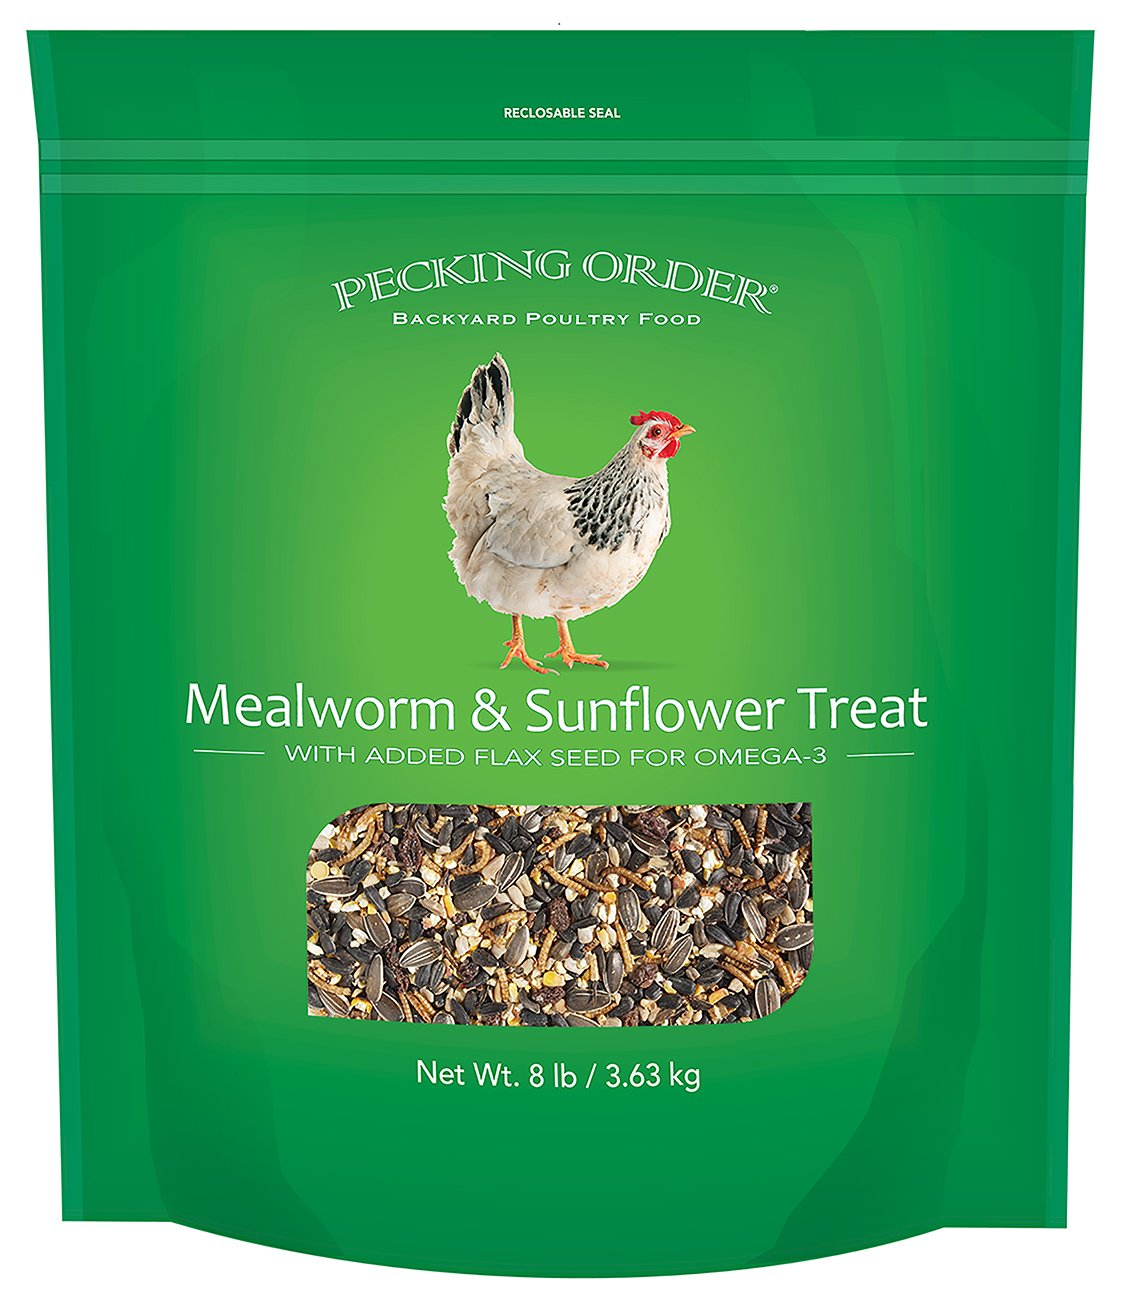 Pecking Order Mealworm & Sunflower Treat, 8 lb by Pecking Order (Image #1)